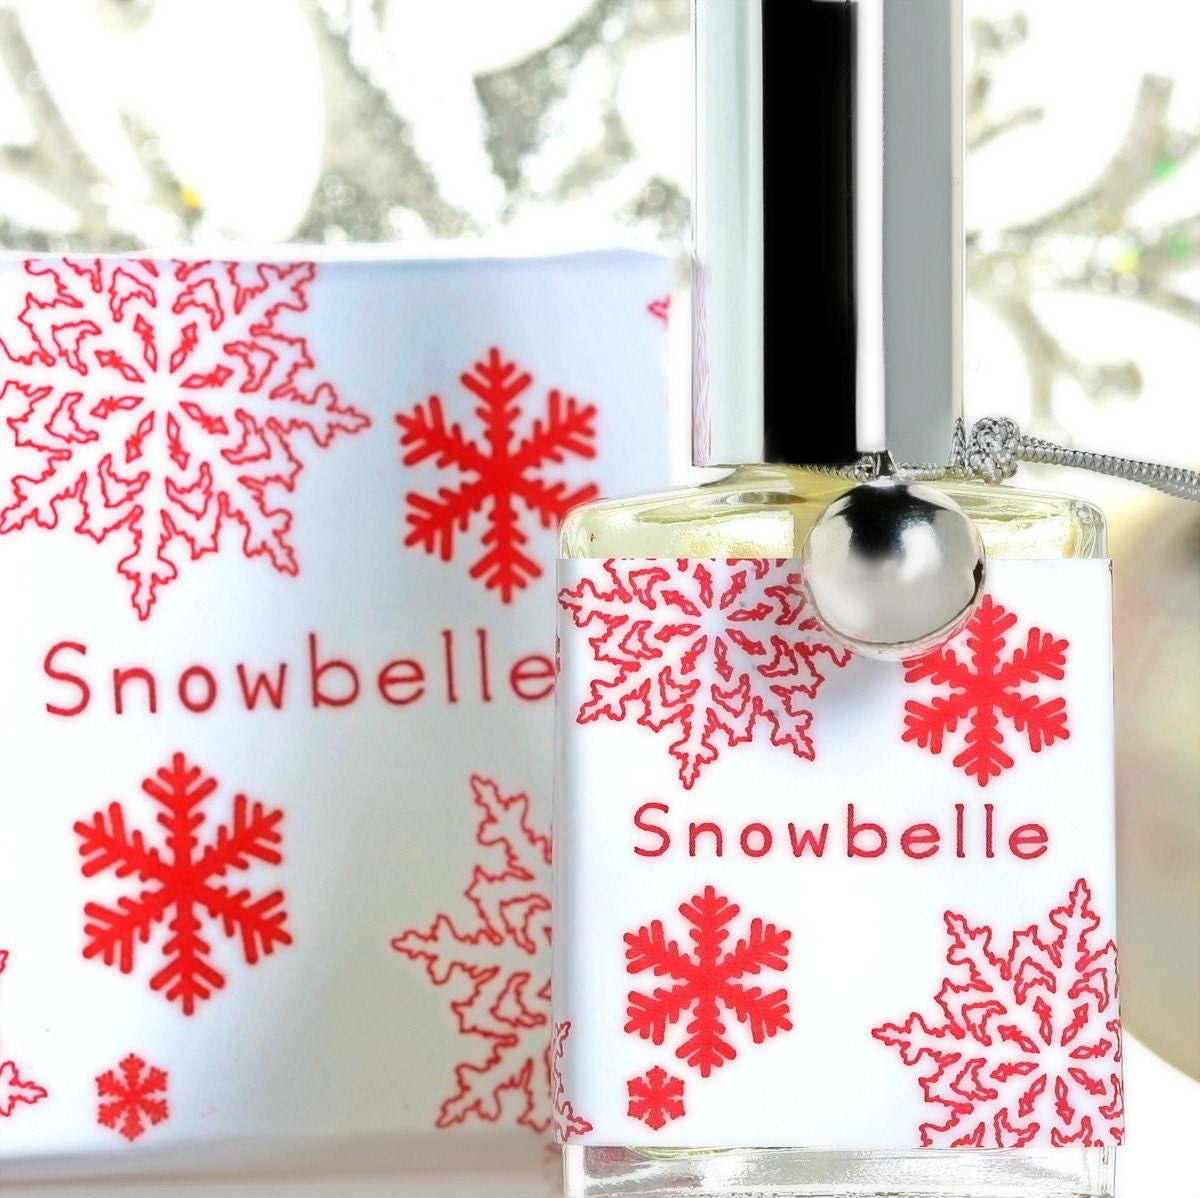 SNOWBELLE tm Red Perfume Spray and Perfumed Soap by themefragrance from etsy.com